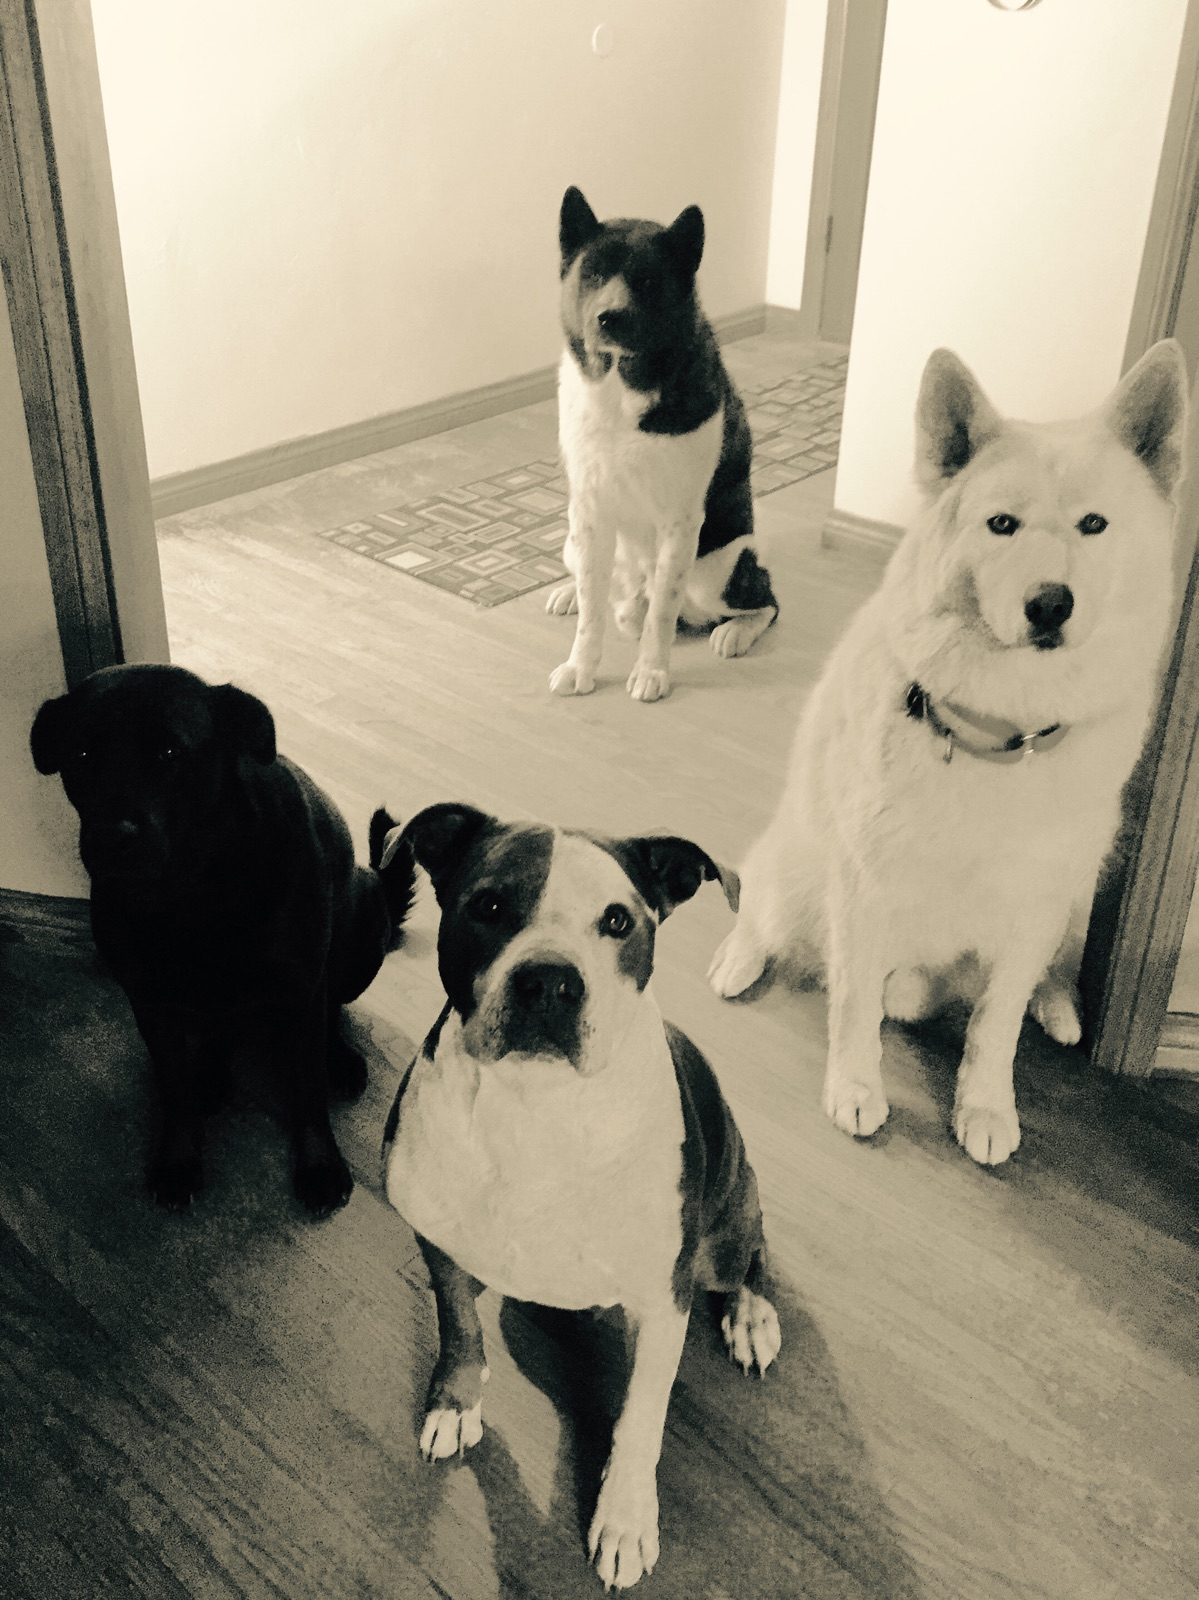 The Pack in Black and White